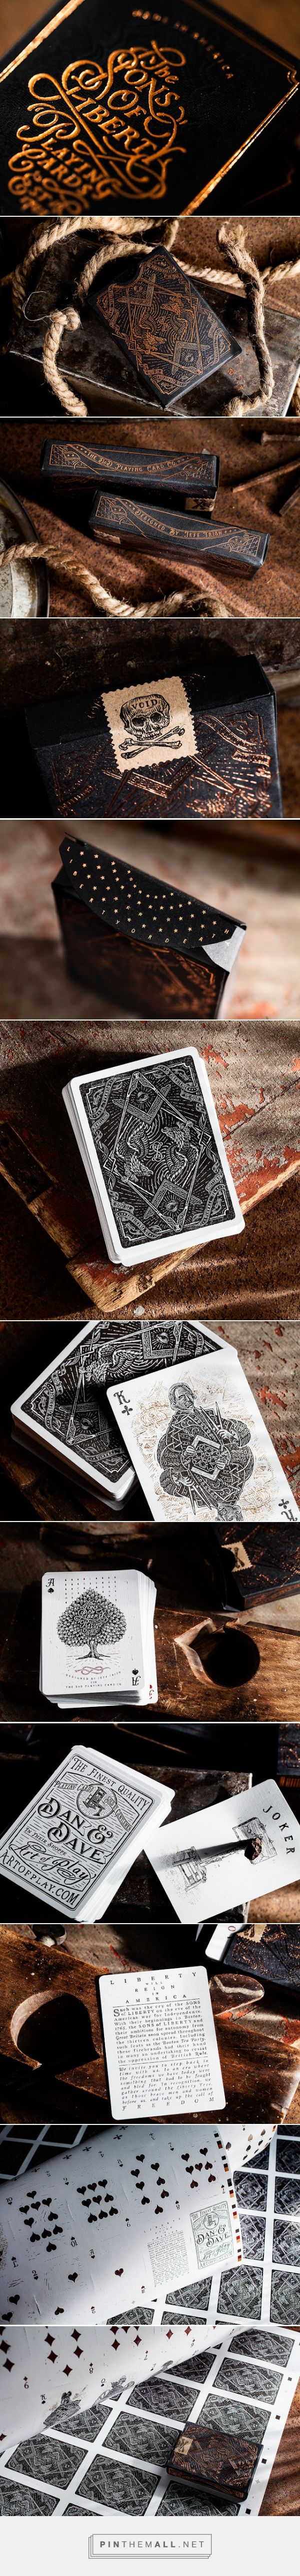 Sons of Liberty Playing Cards packaging designed by Jeff Trish - http://www.packagingoftheworld.com/2016/01/sons-of-liberty-playing-cards.html